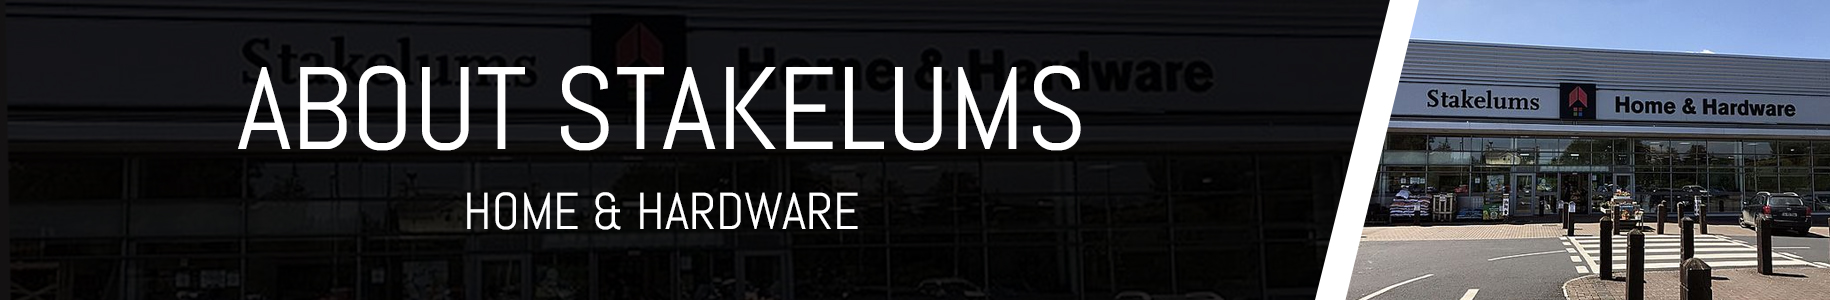 About Us Stakelums Home & Hardware